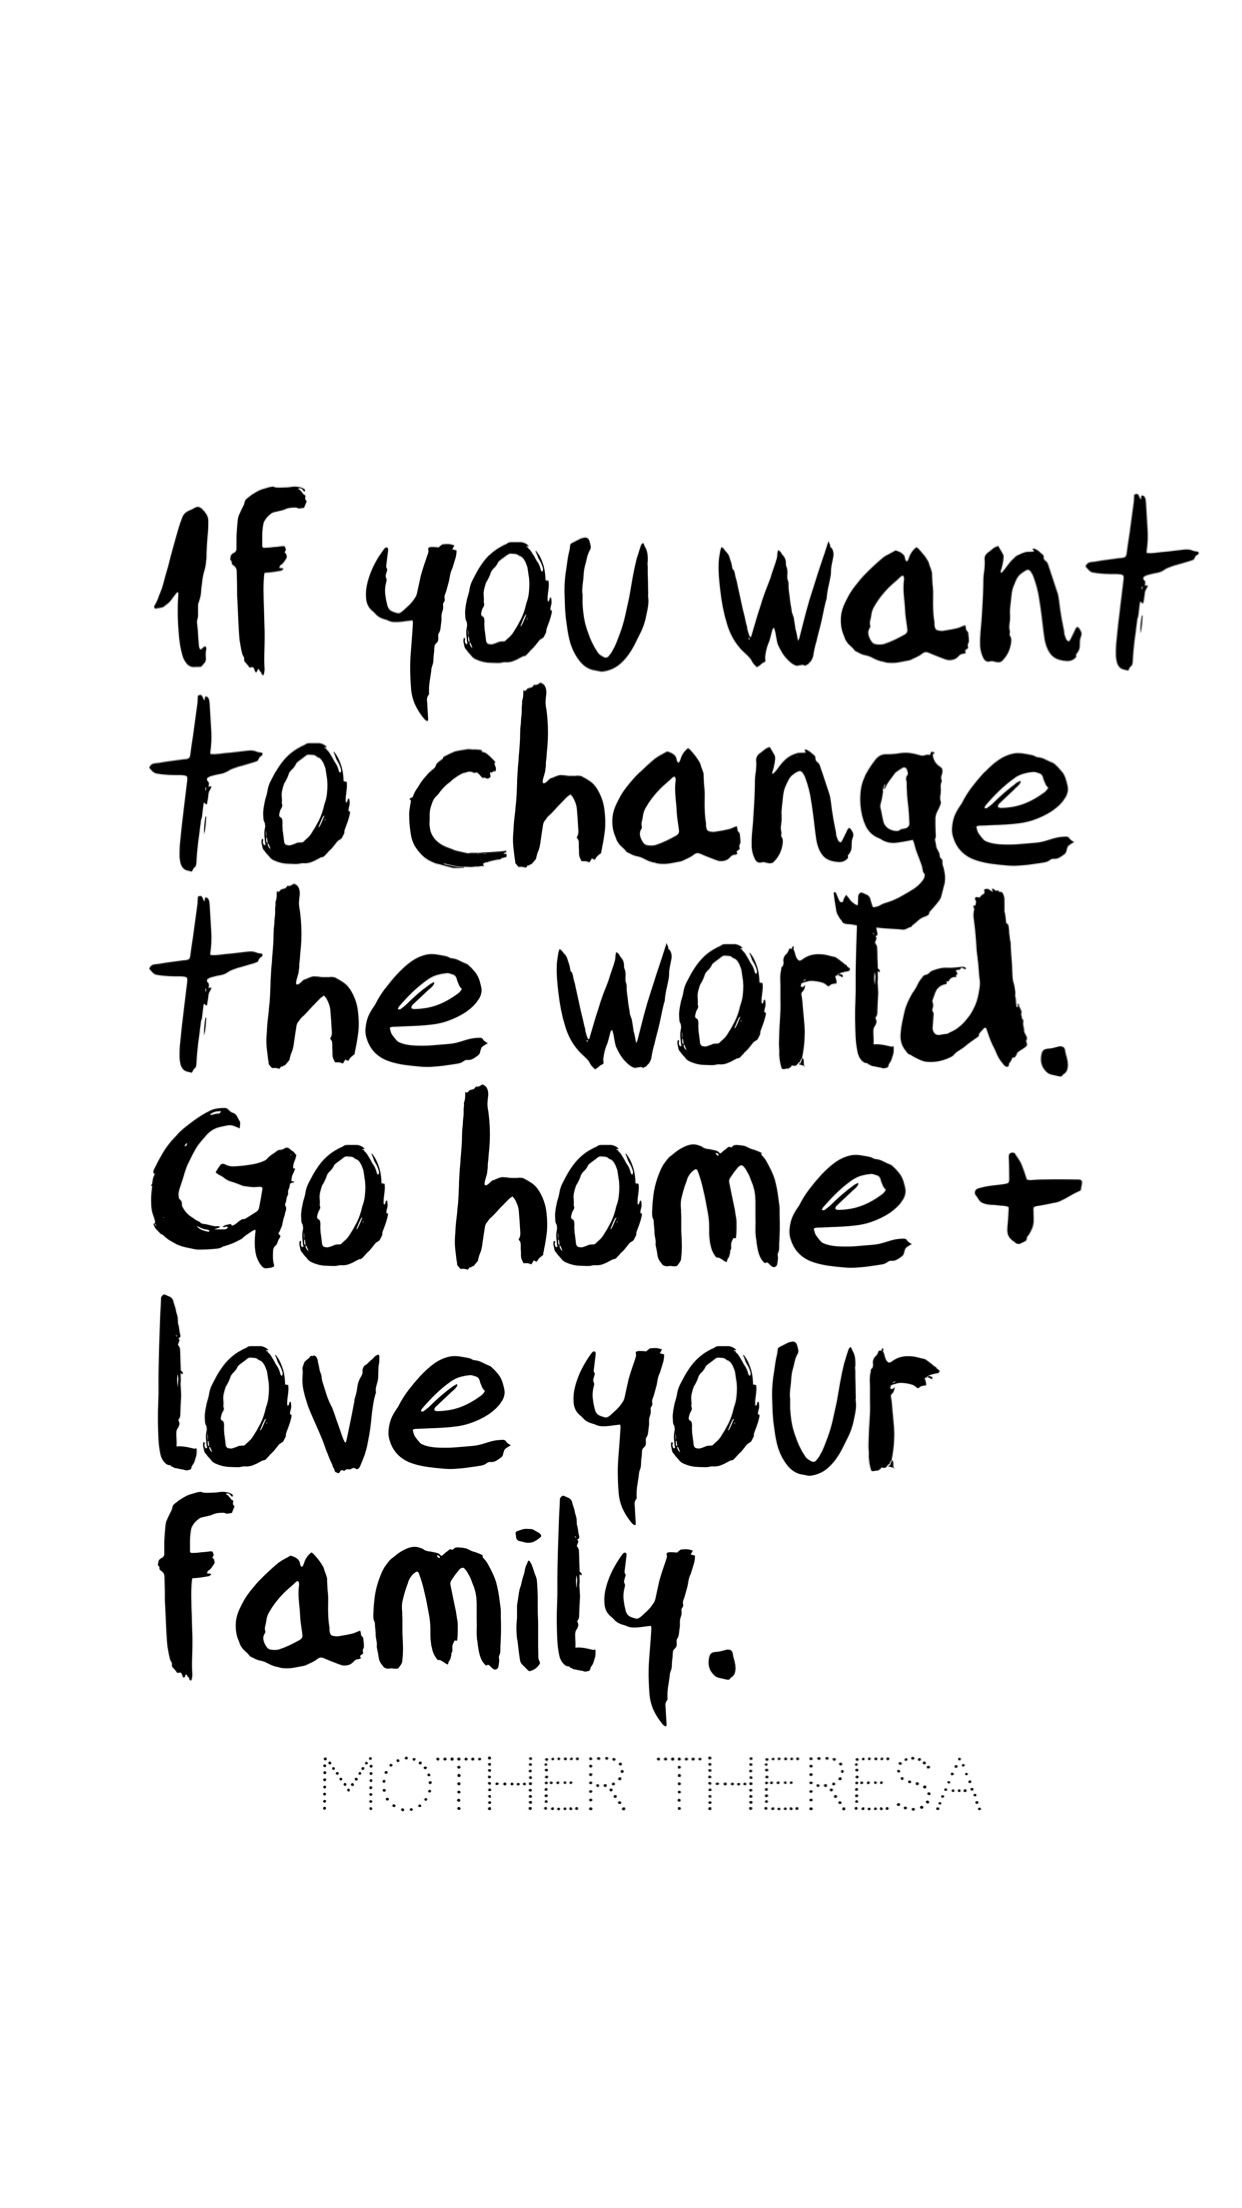 If you want to change the world, go home + love your family